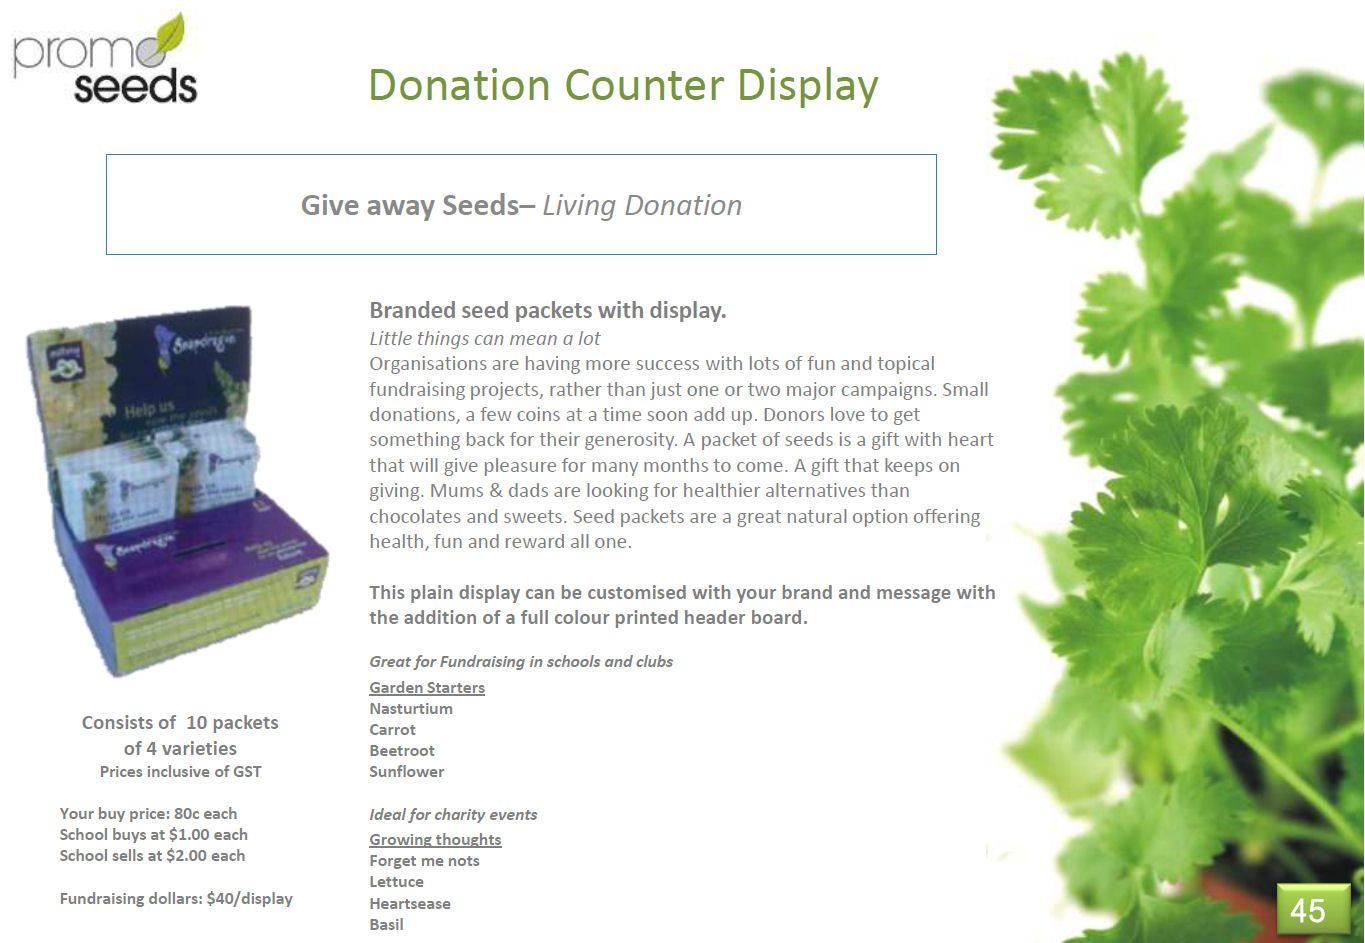 promoseeds donation counter display perfect for fundraising in